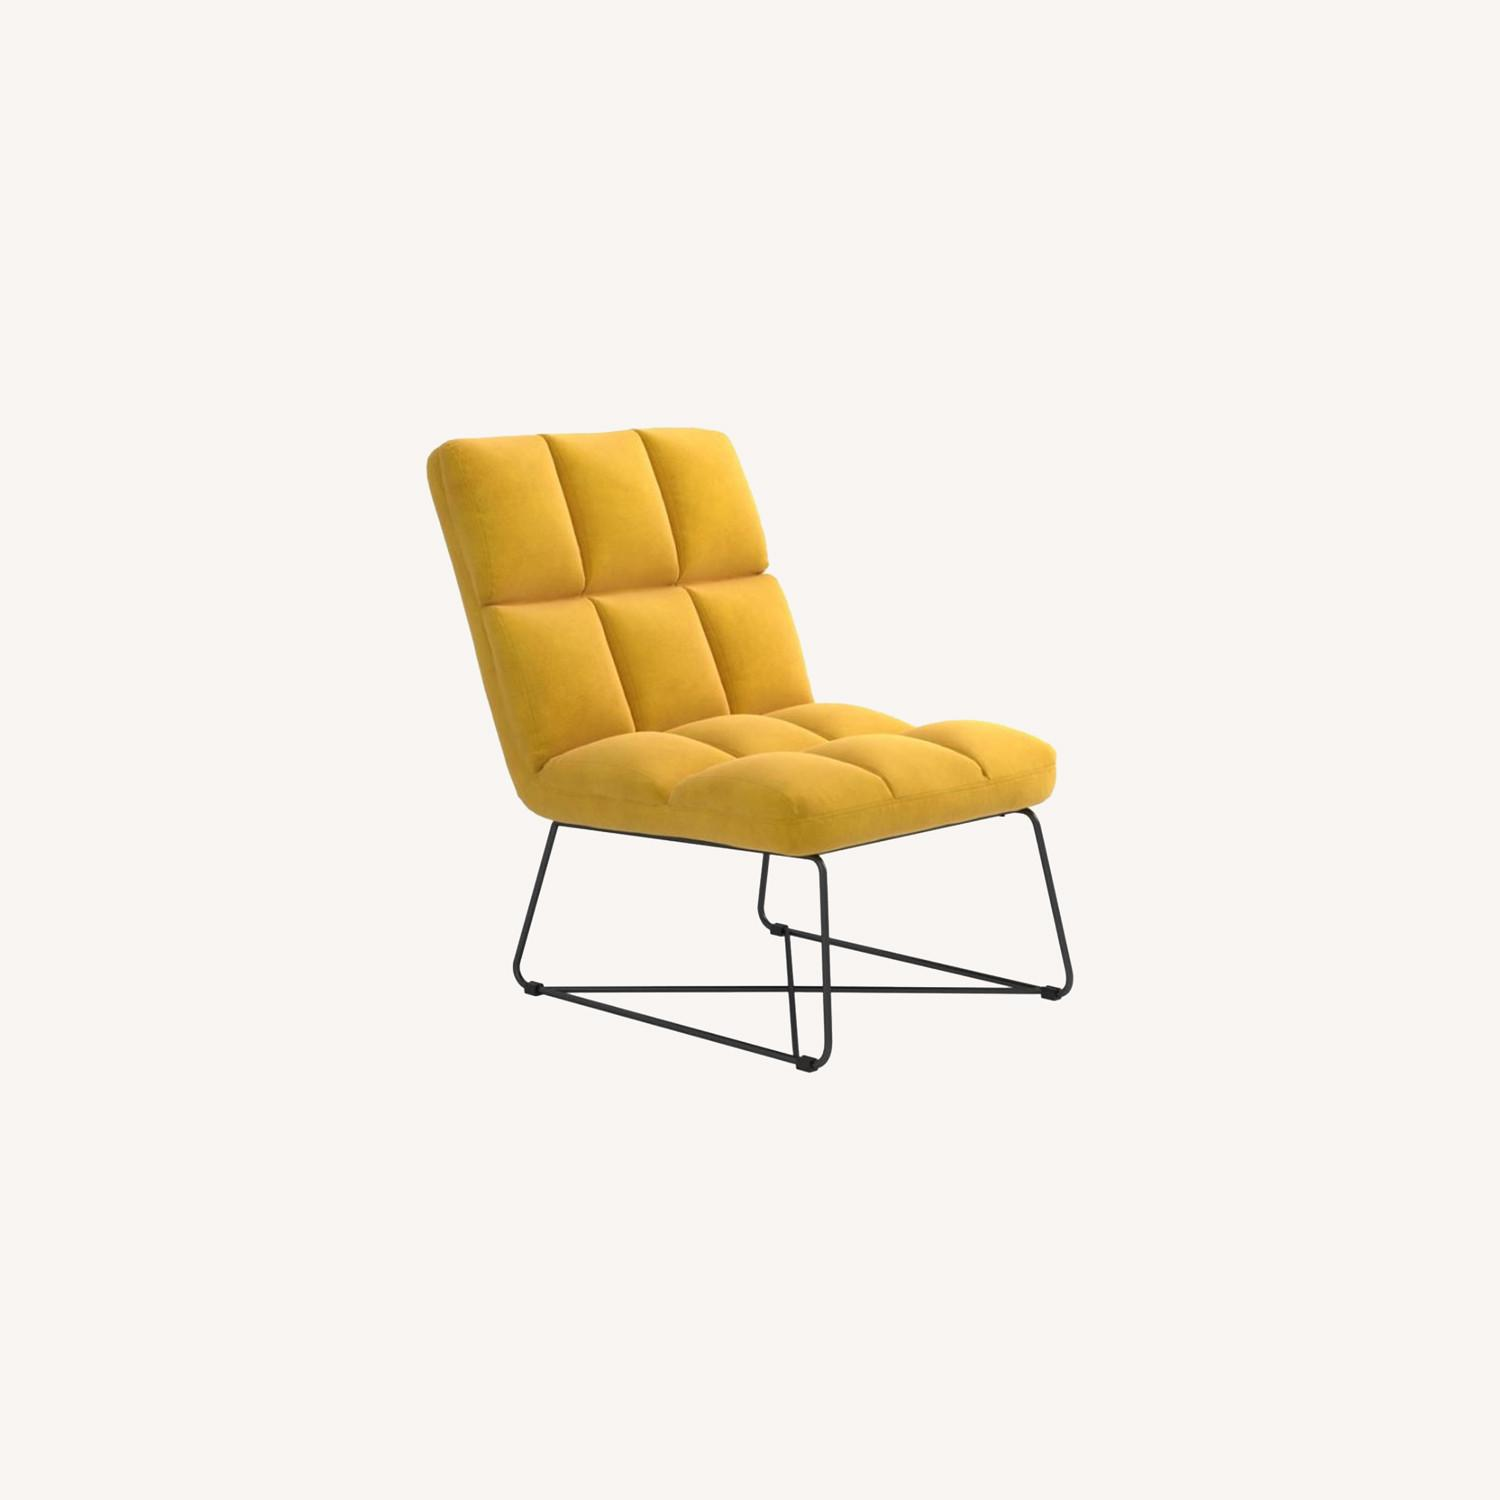 Accent Chair In Burnt Yellow Fabric & Grid Details - image-4